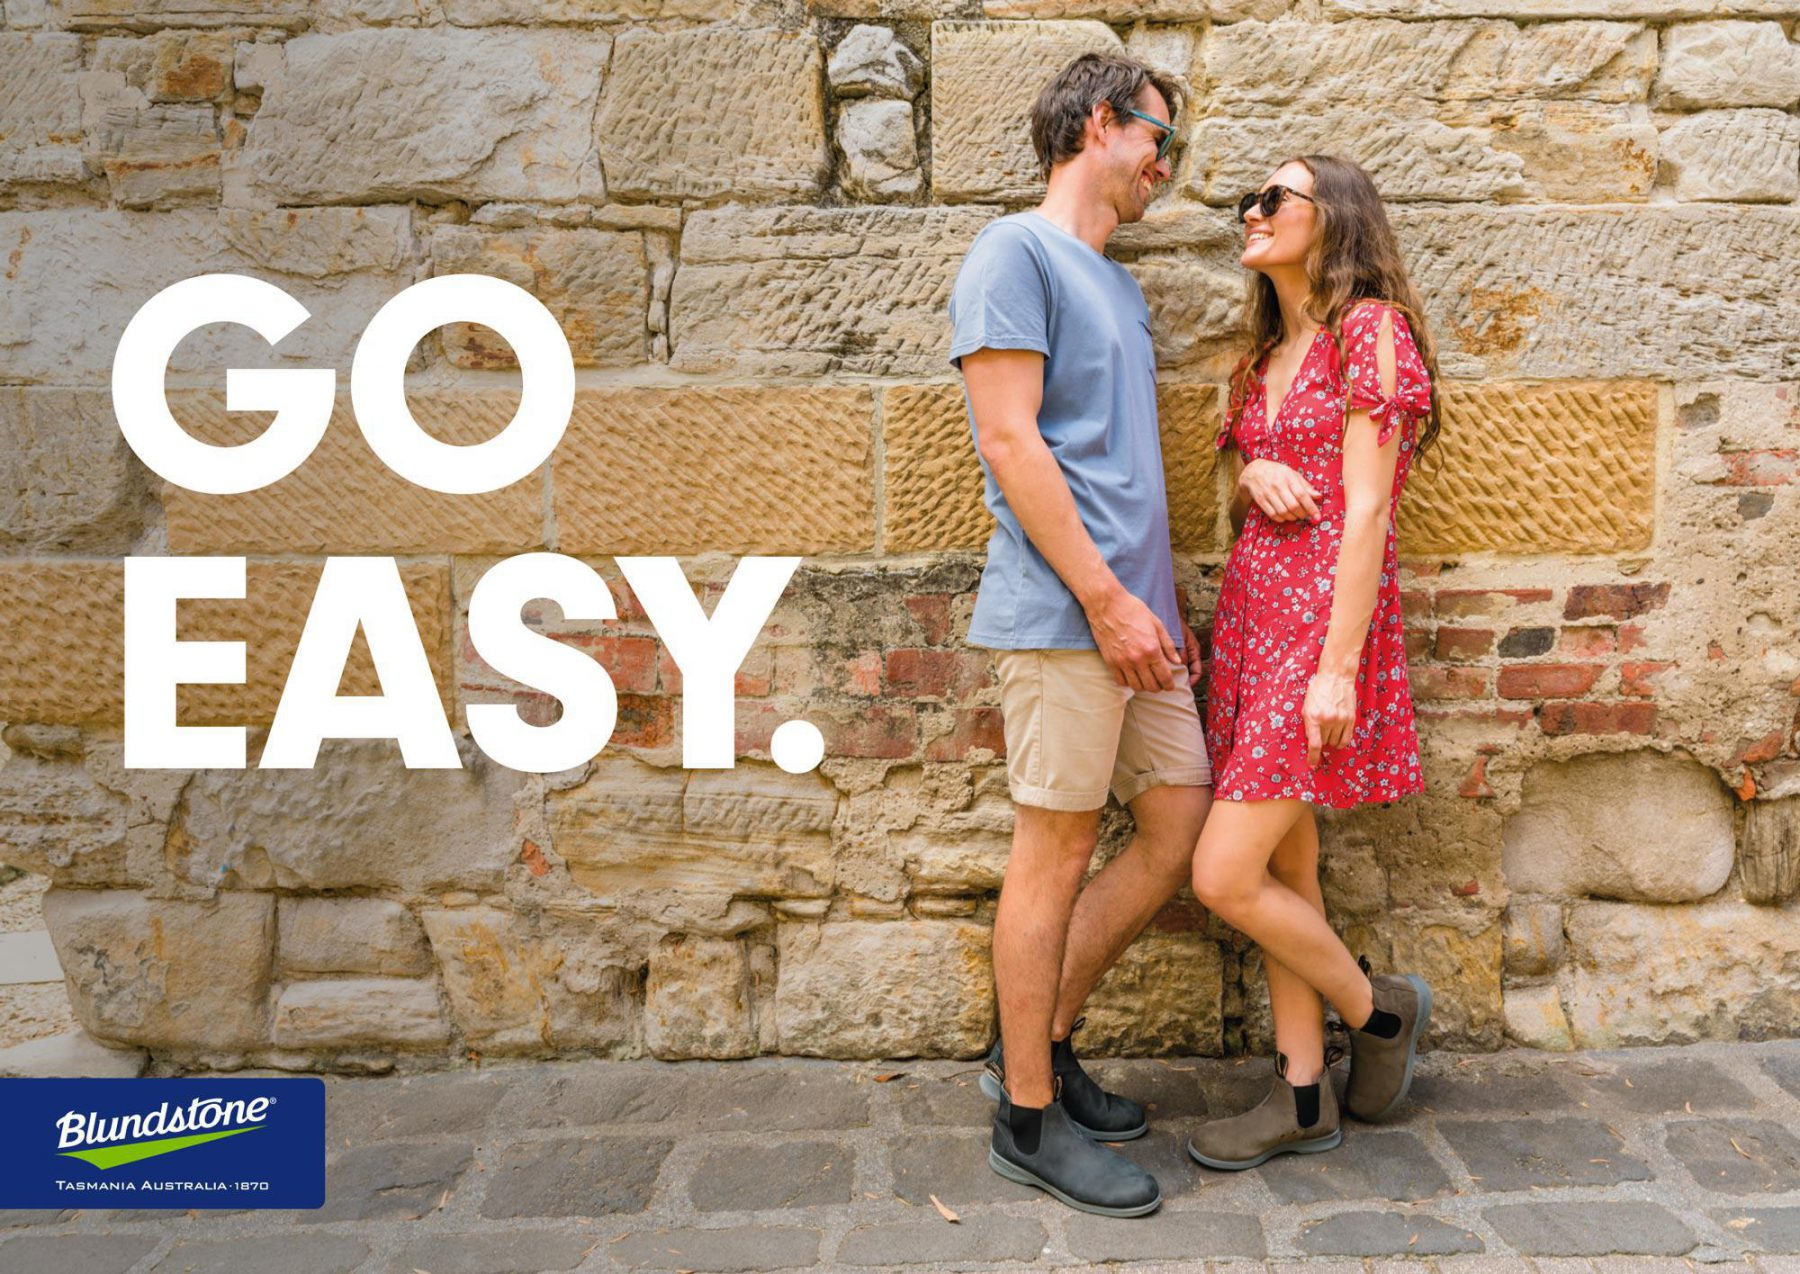 Poster with man and woman wearing Blundstone Summer Boots and text: Go Easy